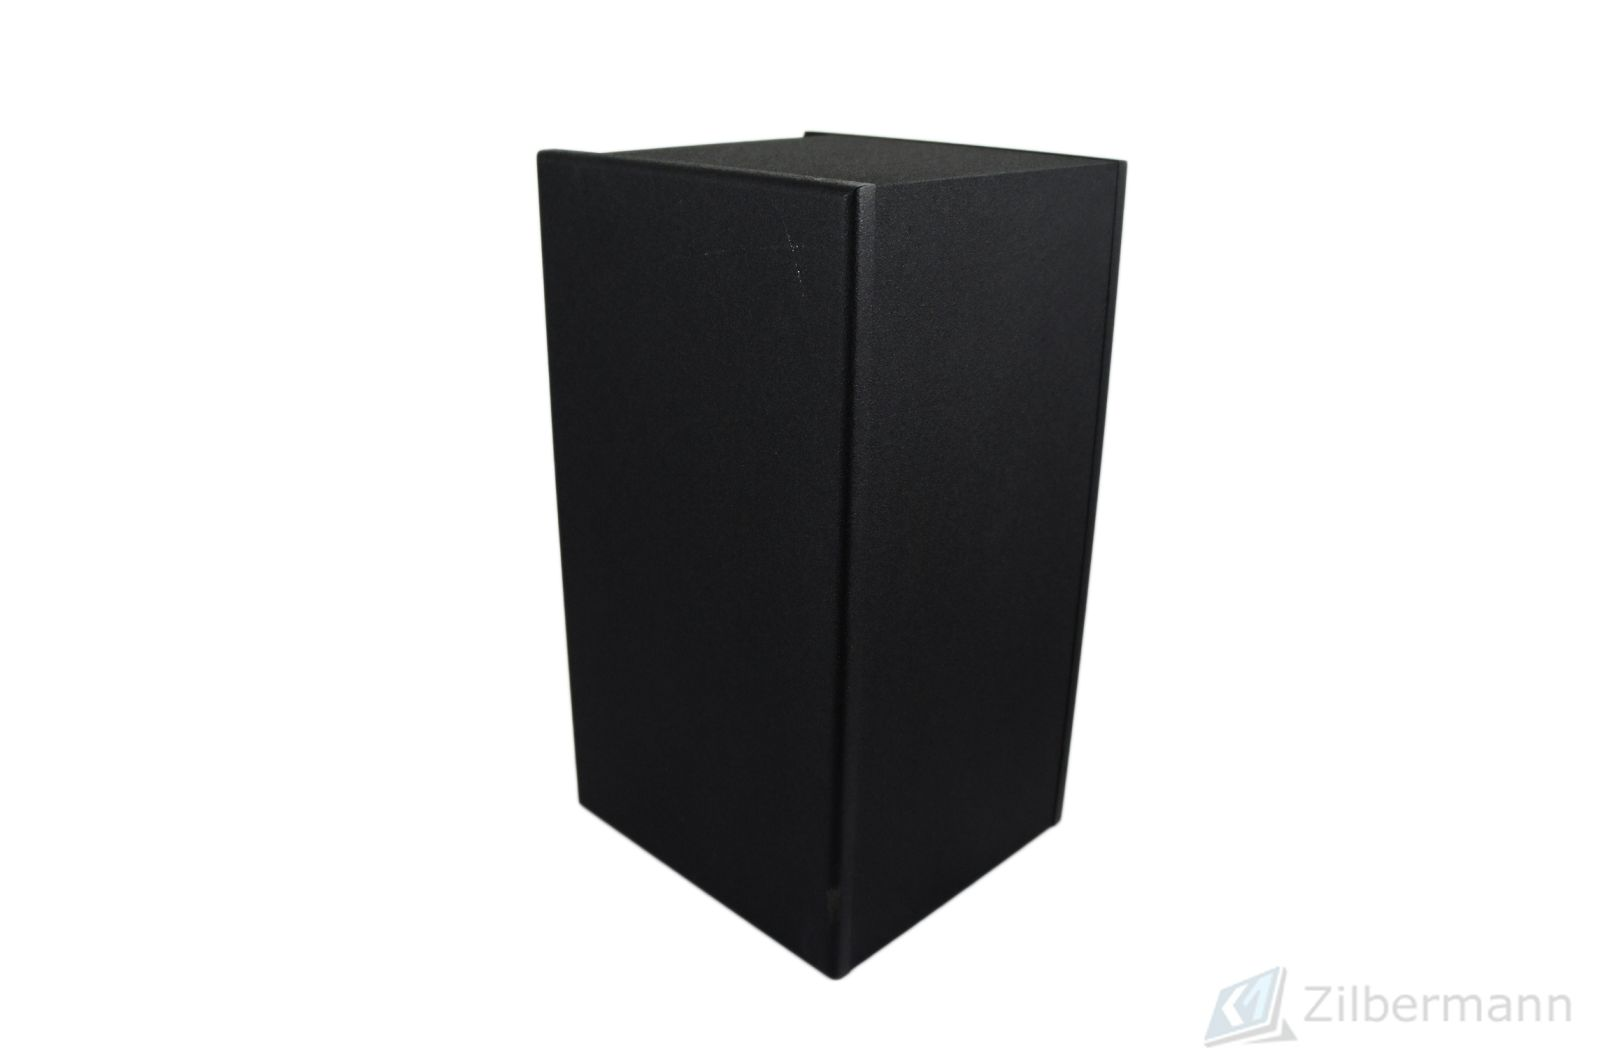 Bose_Acoustimass_4_Heimkino-System_Subwoofer_04